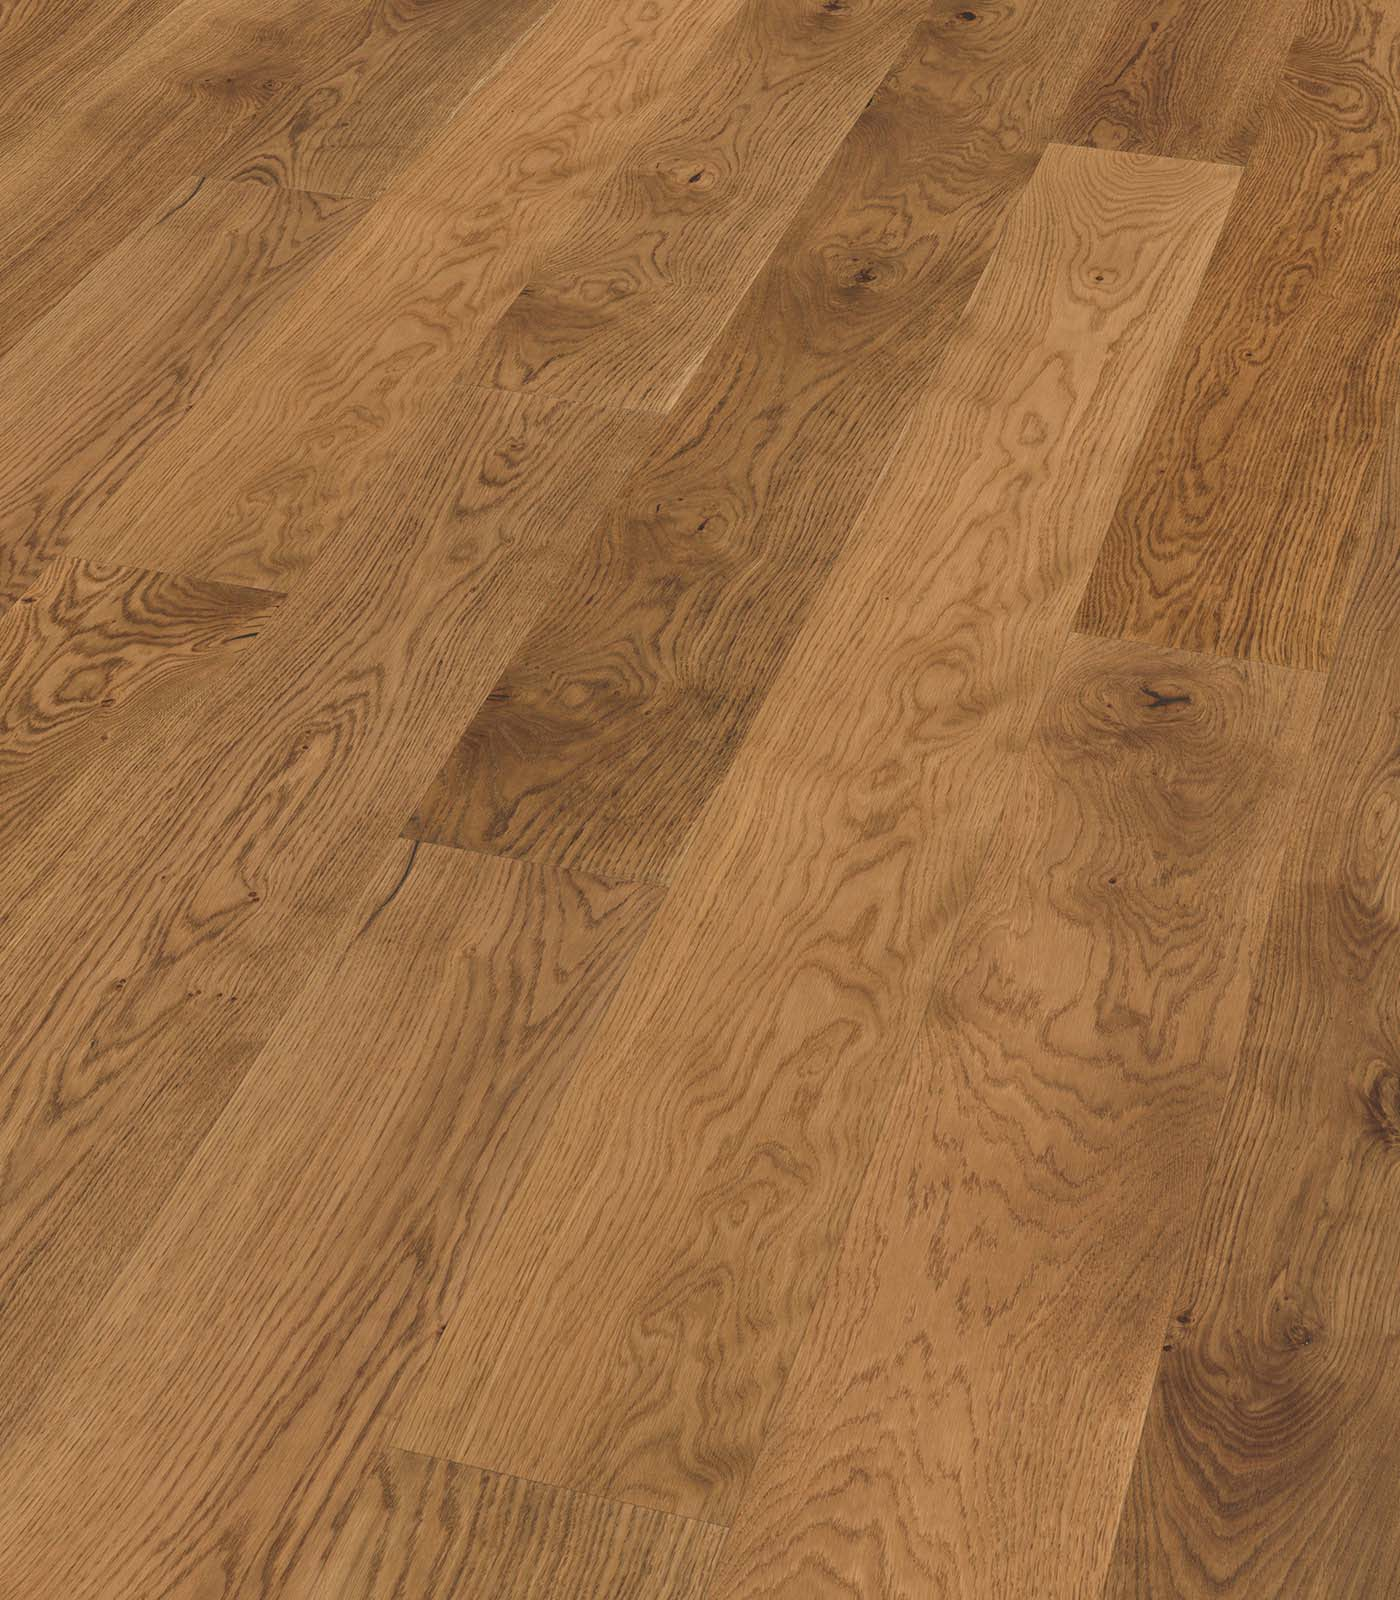 Semi-Fumed Oak Rustic-Origins Collection-European Oak Floors-angle